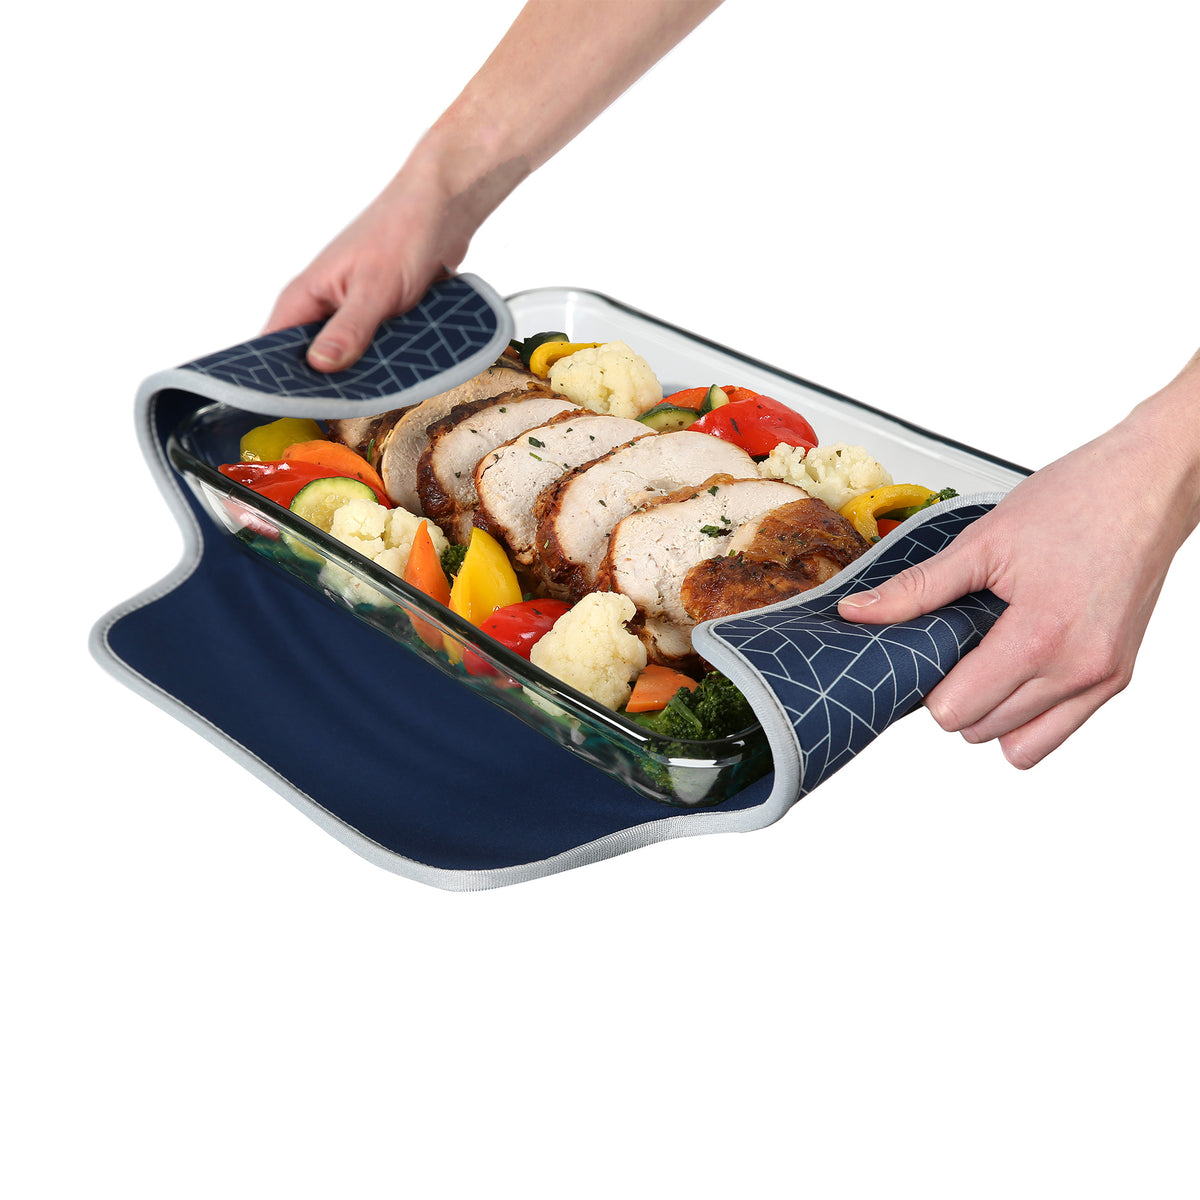 Arctic Zone® Food Pro Expandable Thermal Carrier - Navy - Trivet propped